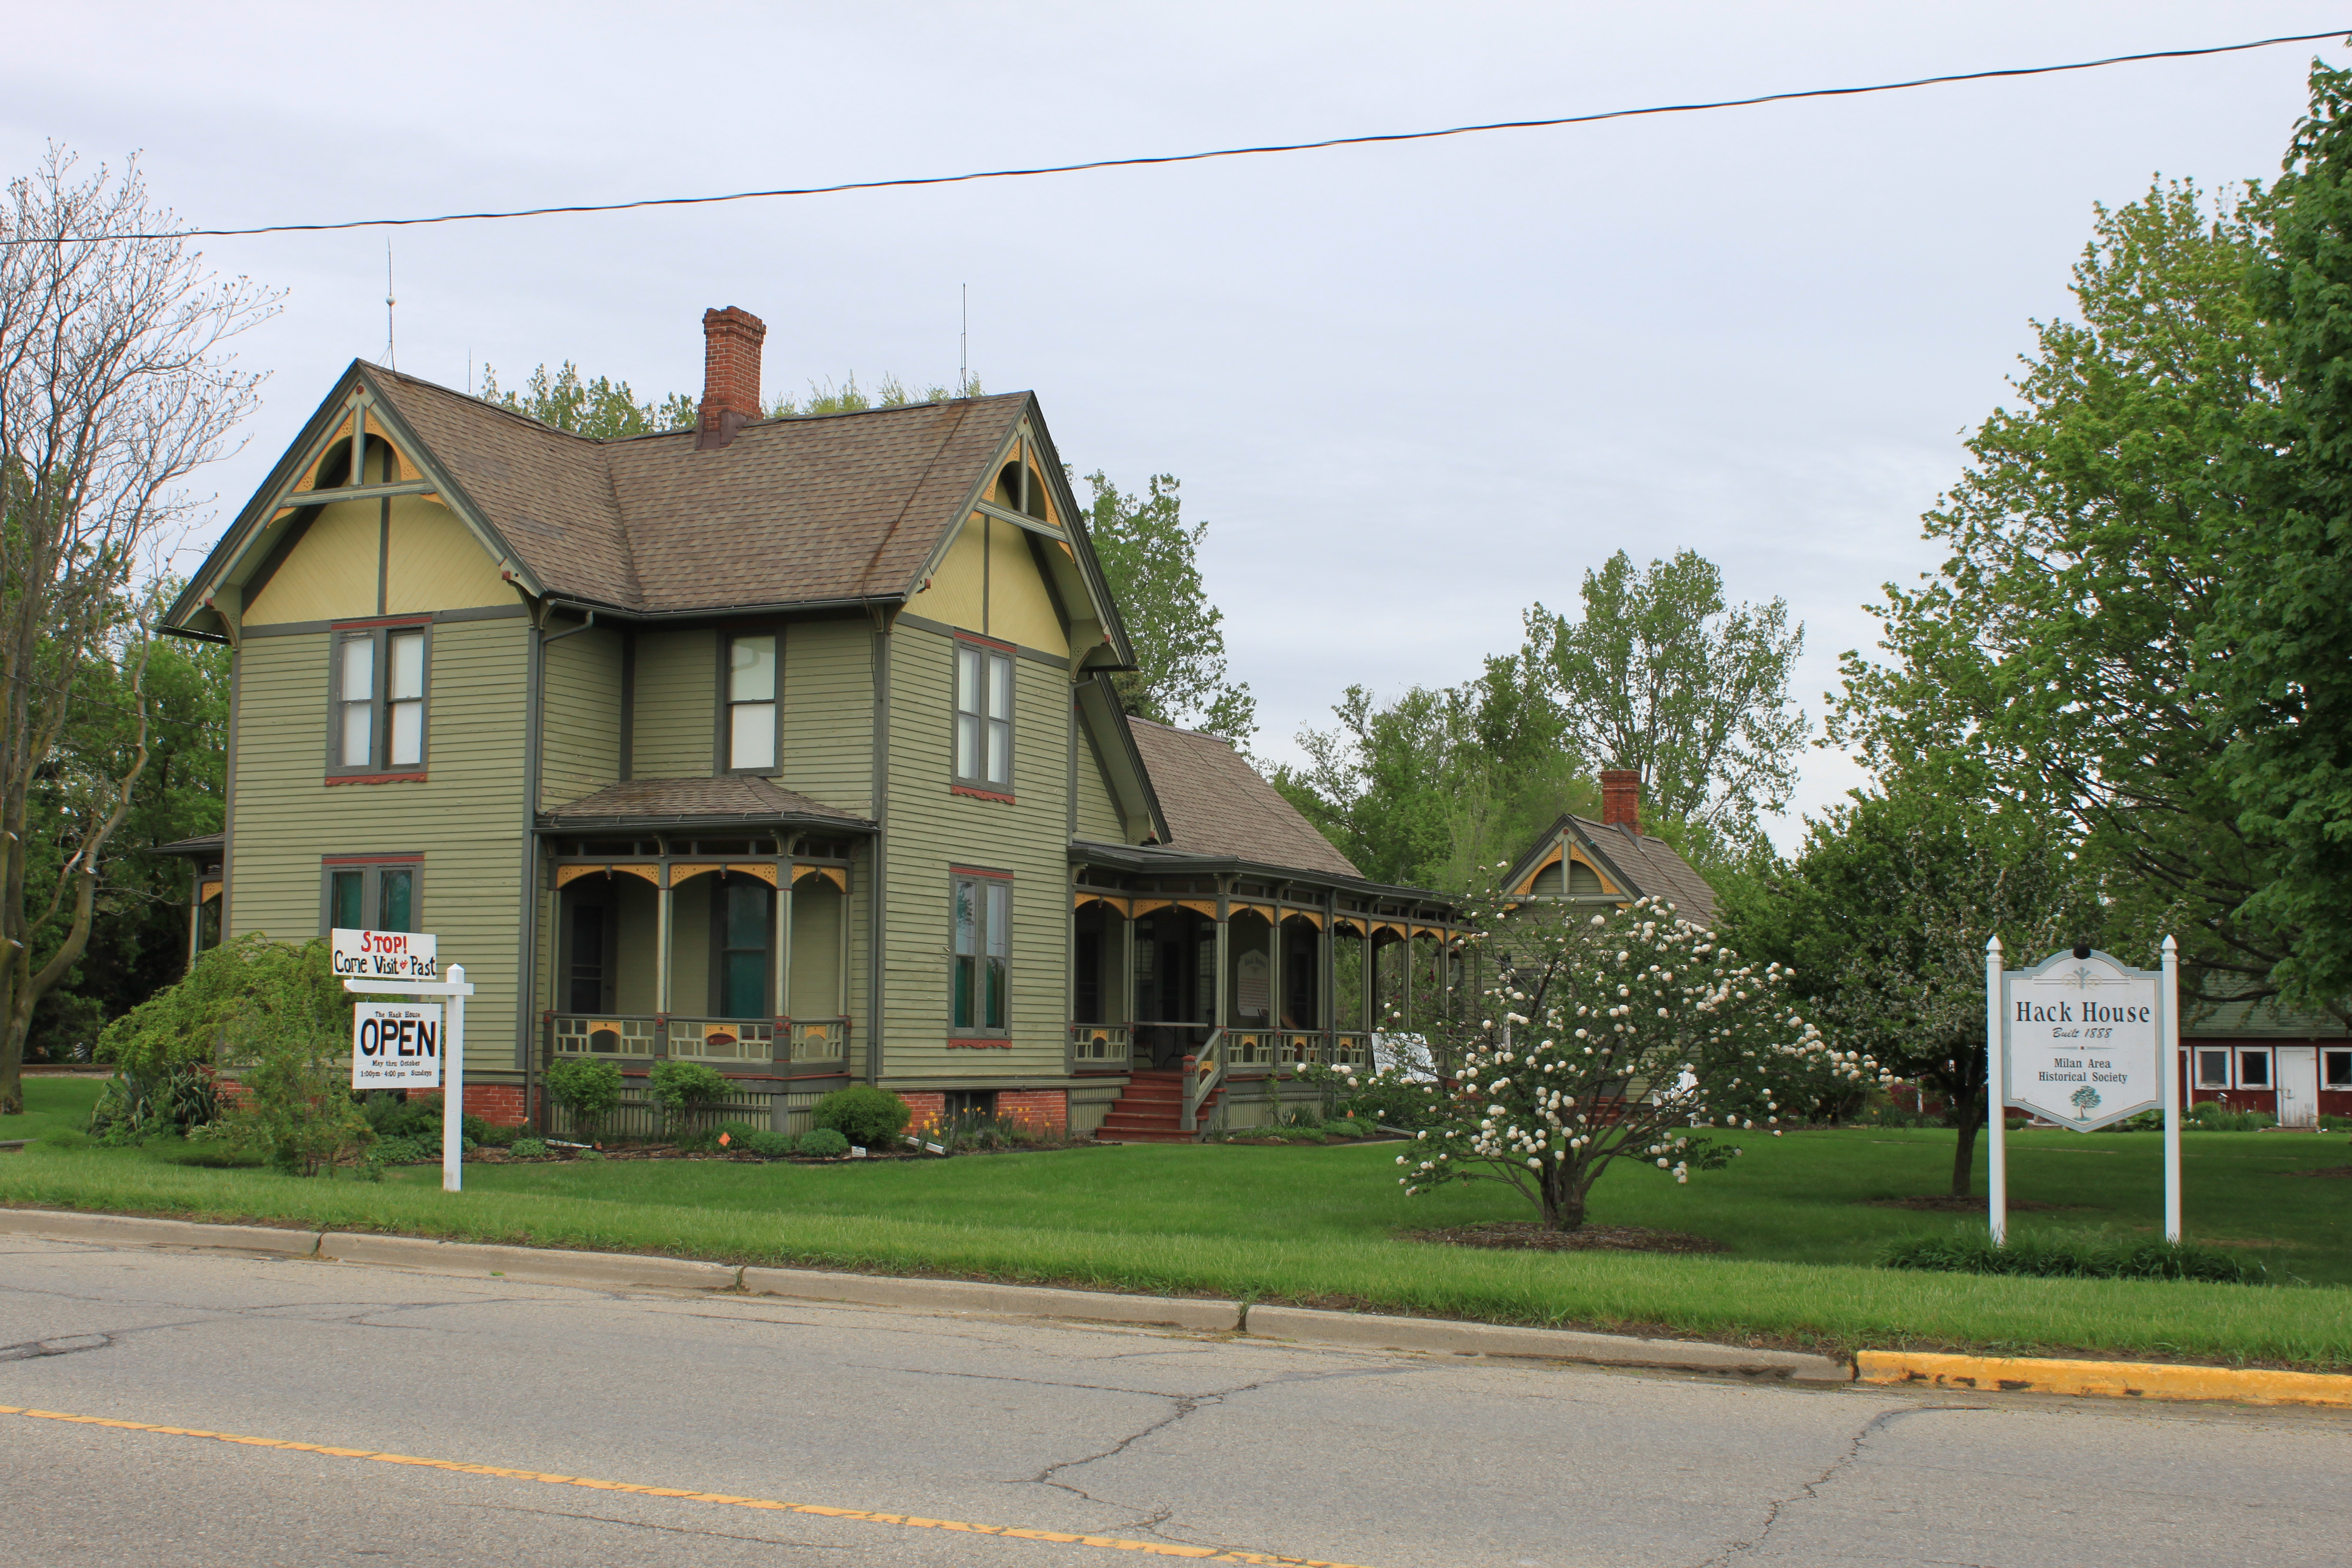 Archivo:Hack House Milan Michigan Register of Historic Places.JPG